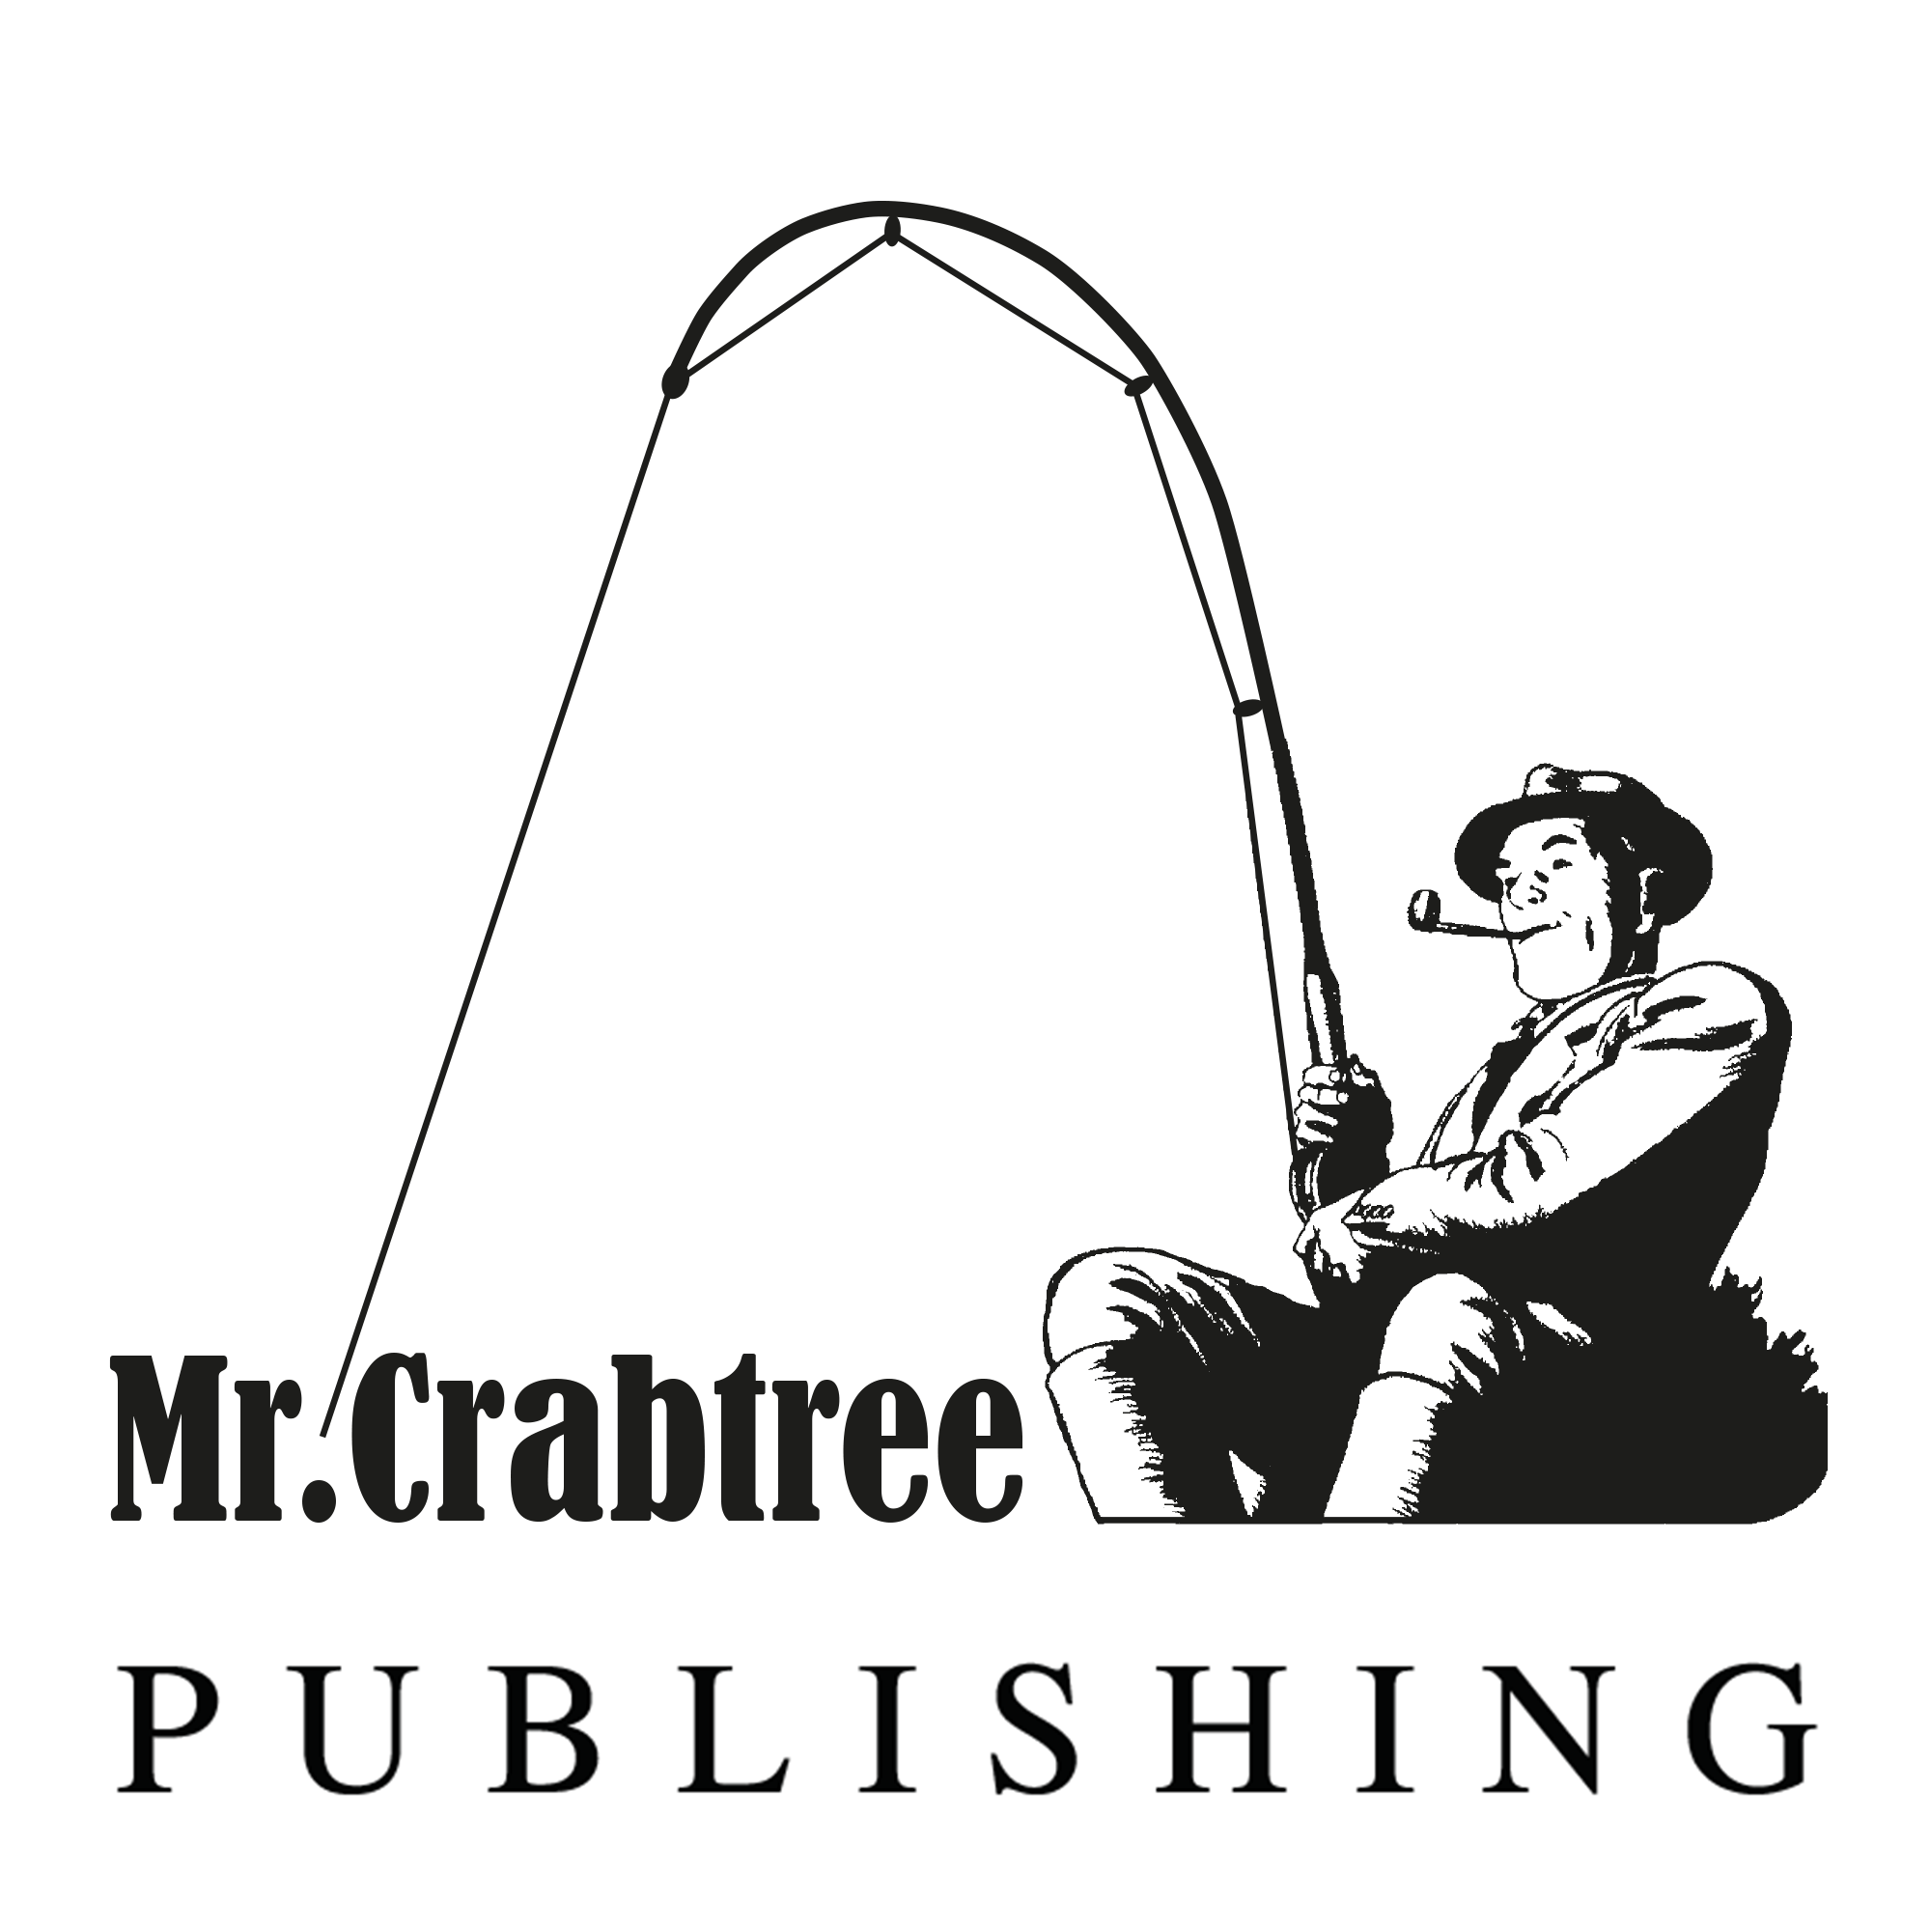 1999x2001 Mr Crabtree Publishing Fishing In The Footsteps Of Mr. Crabtree